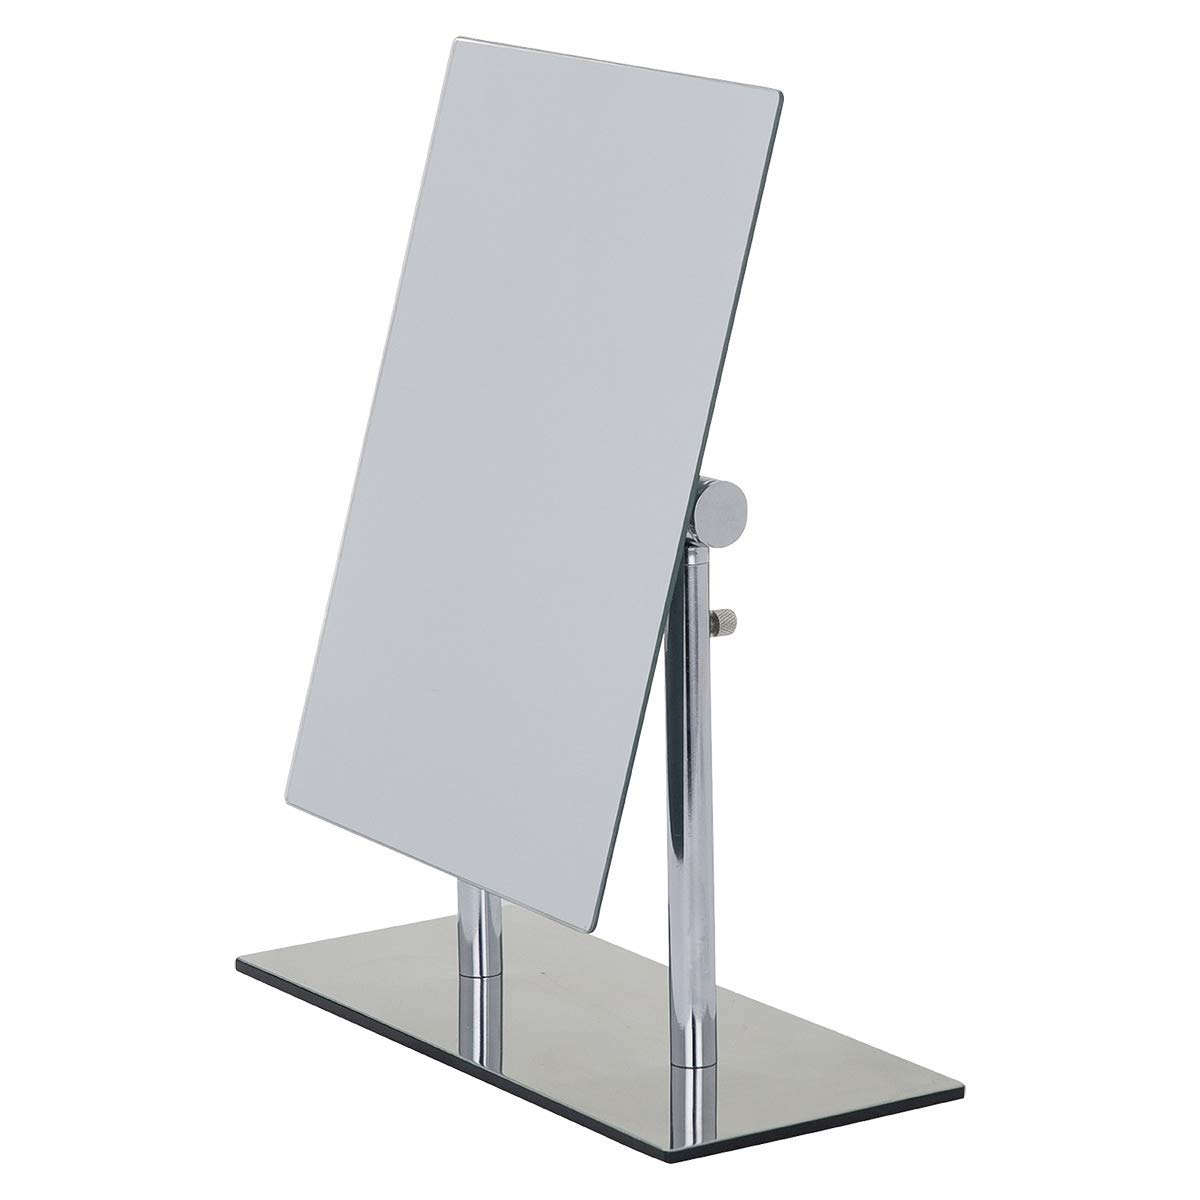 WENKO 3656420100 Standing cosmetic mirror Pinerolo - collapsible, Steel, 9.1 x 10.6 x 3.9 inch, Chrome